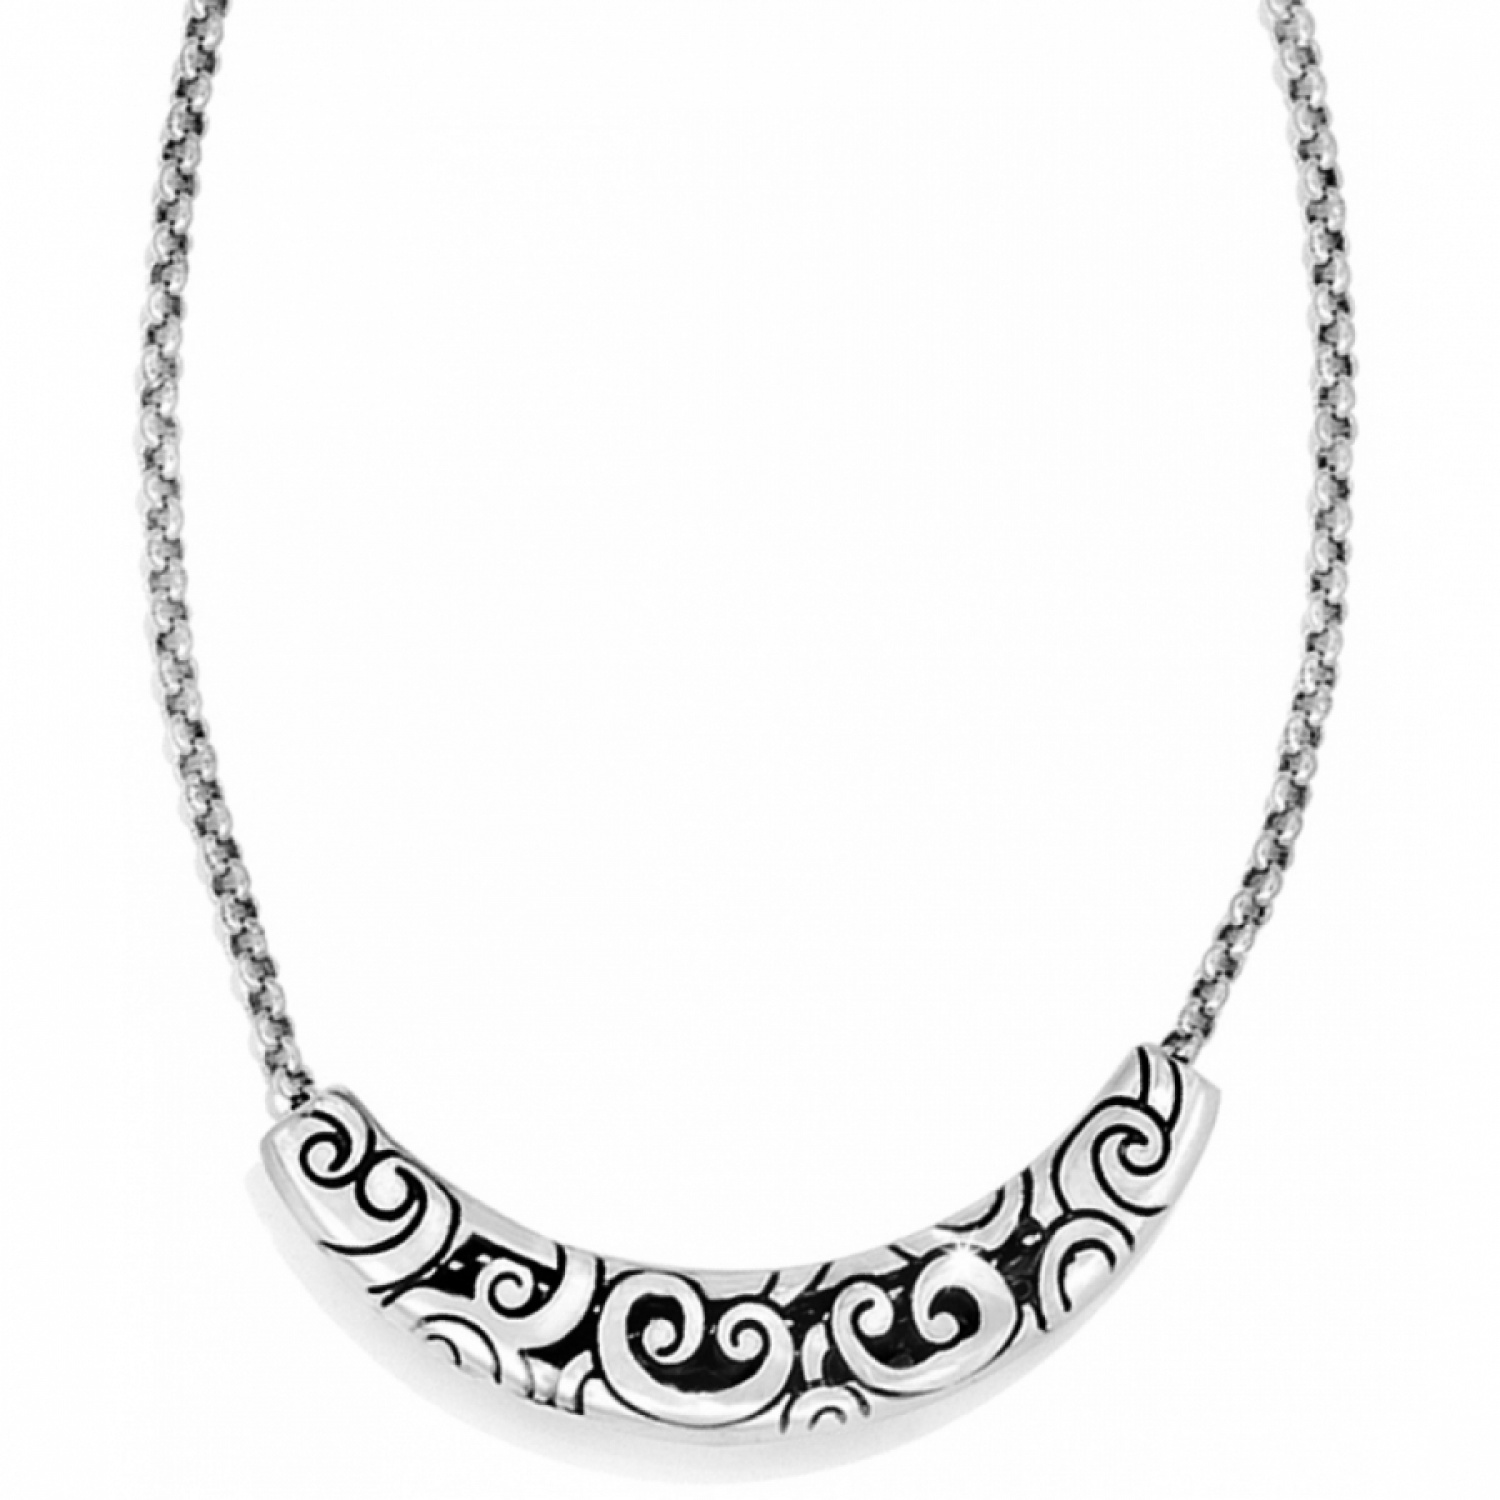 Necklaces collar pictures